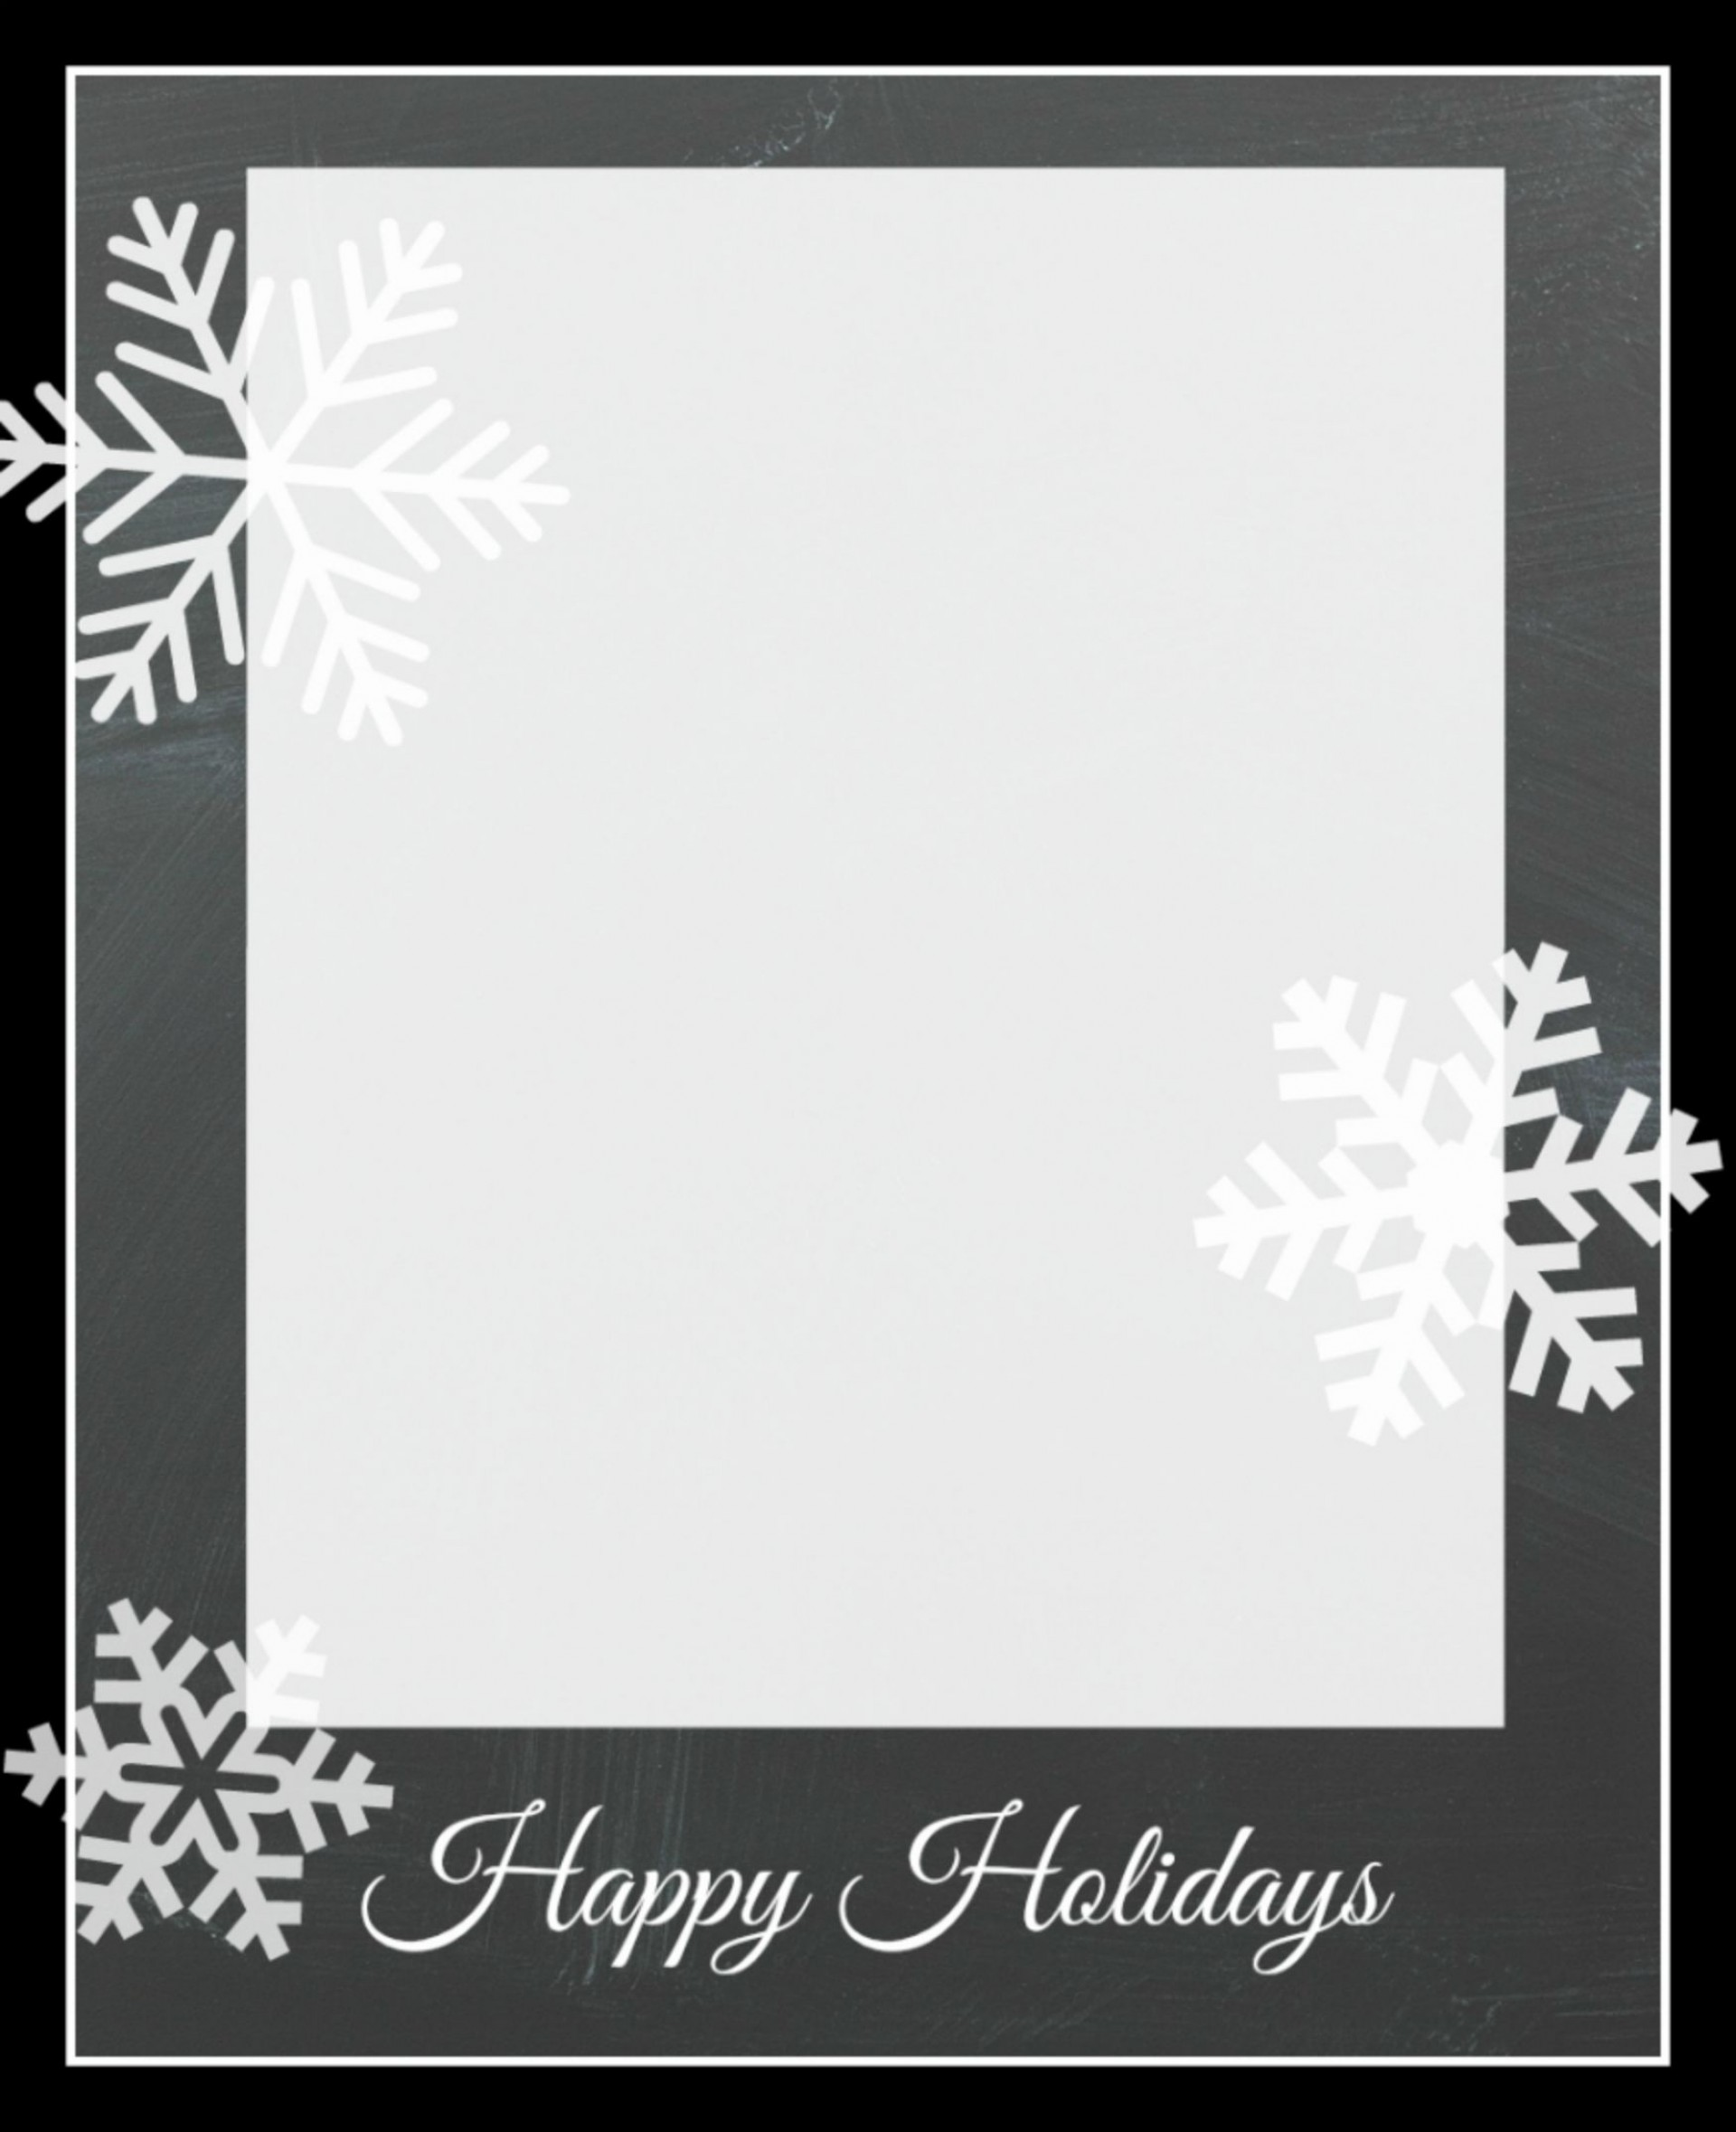 010 Remarkable Free Photo Card Template Idea  Printable Holiday Christma Download1920